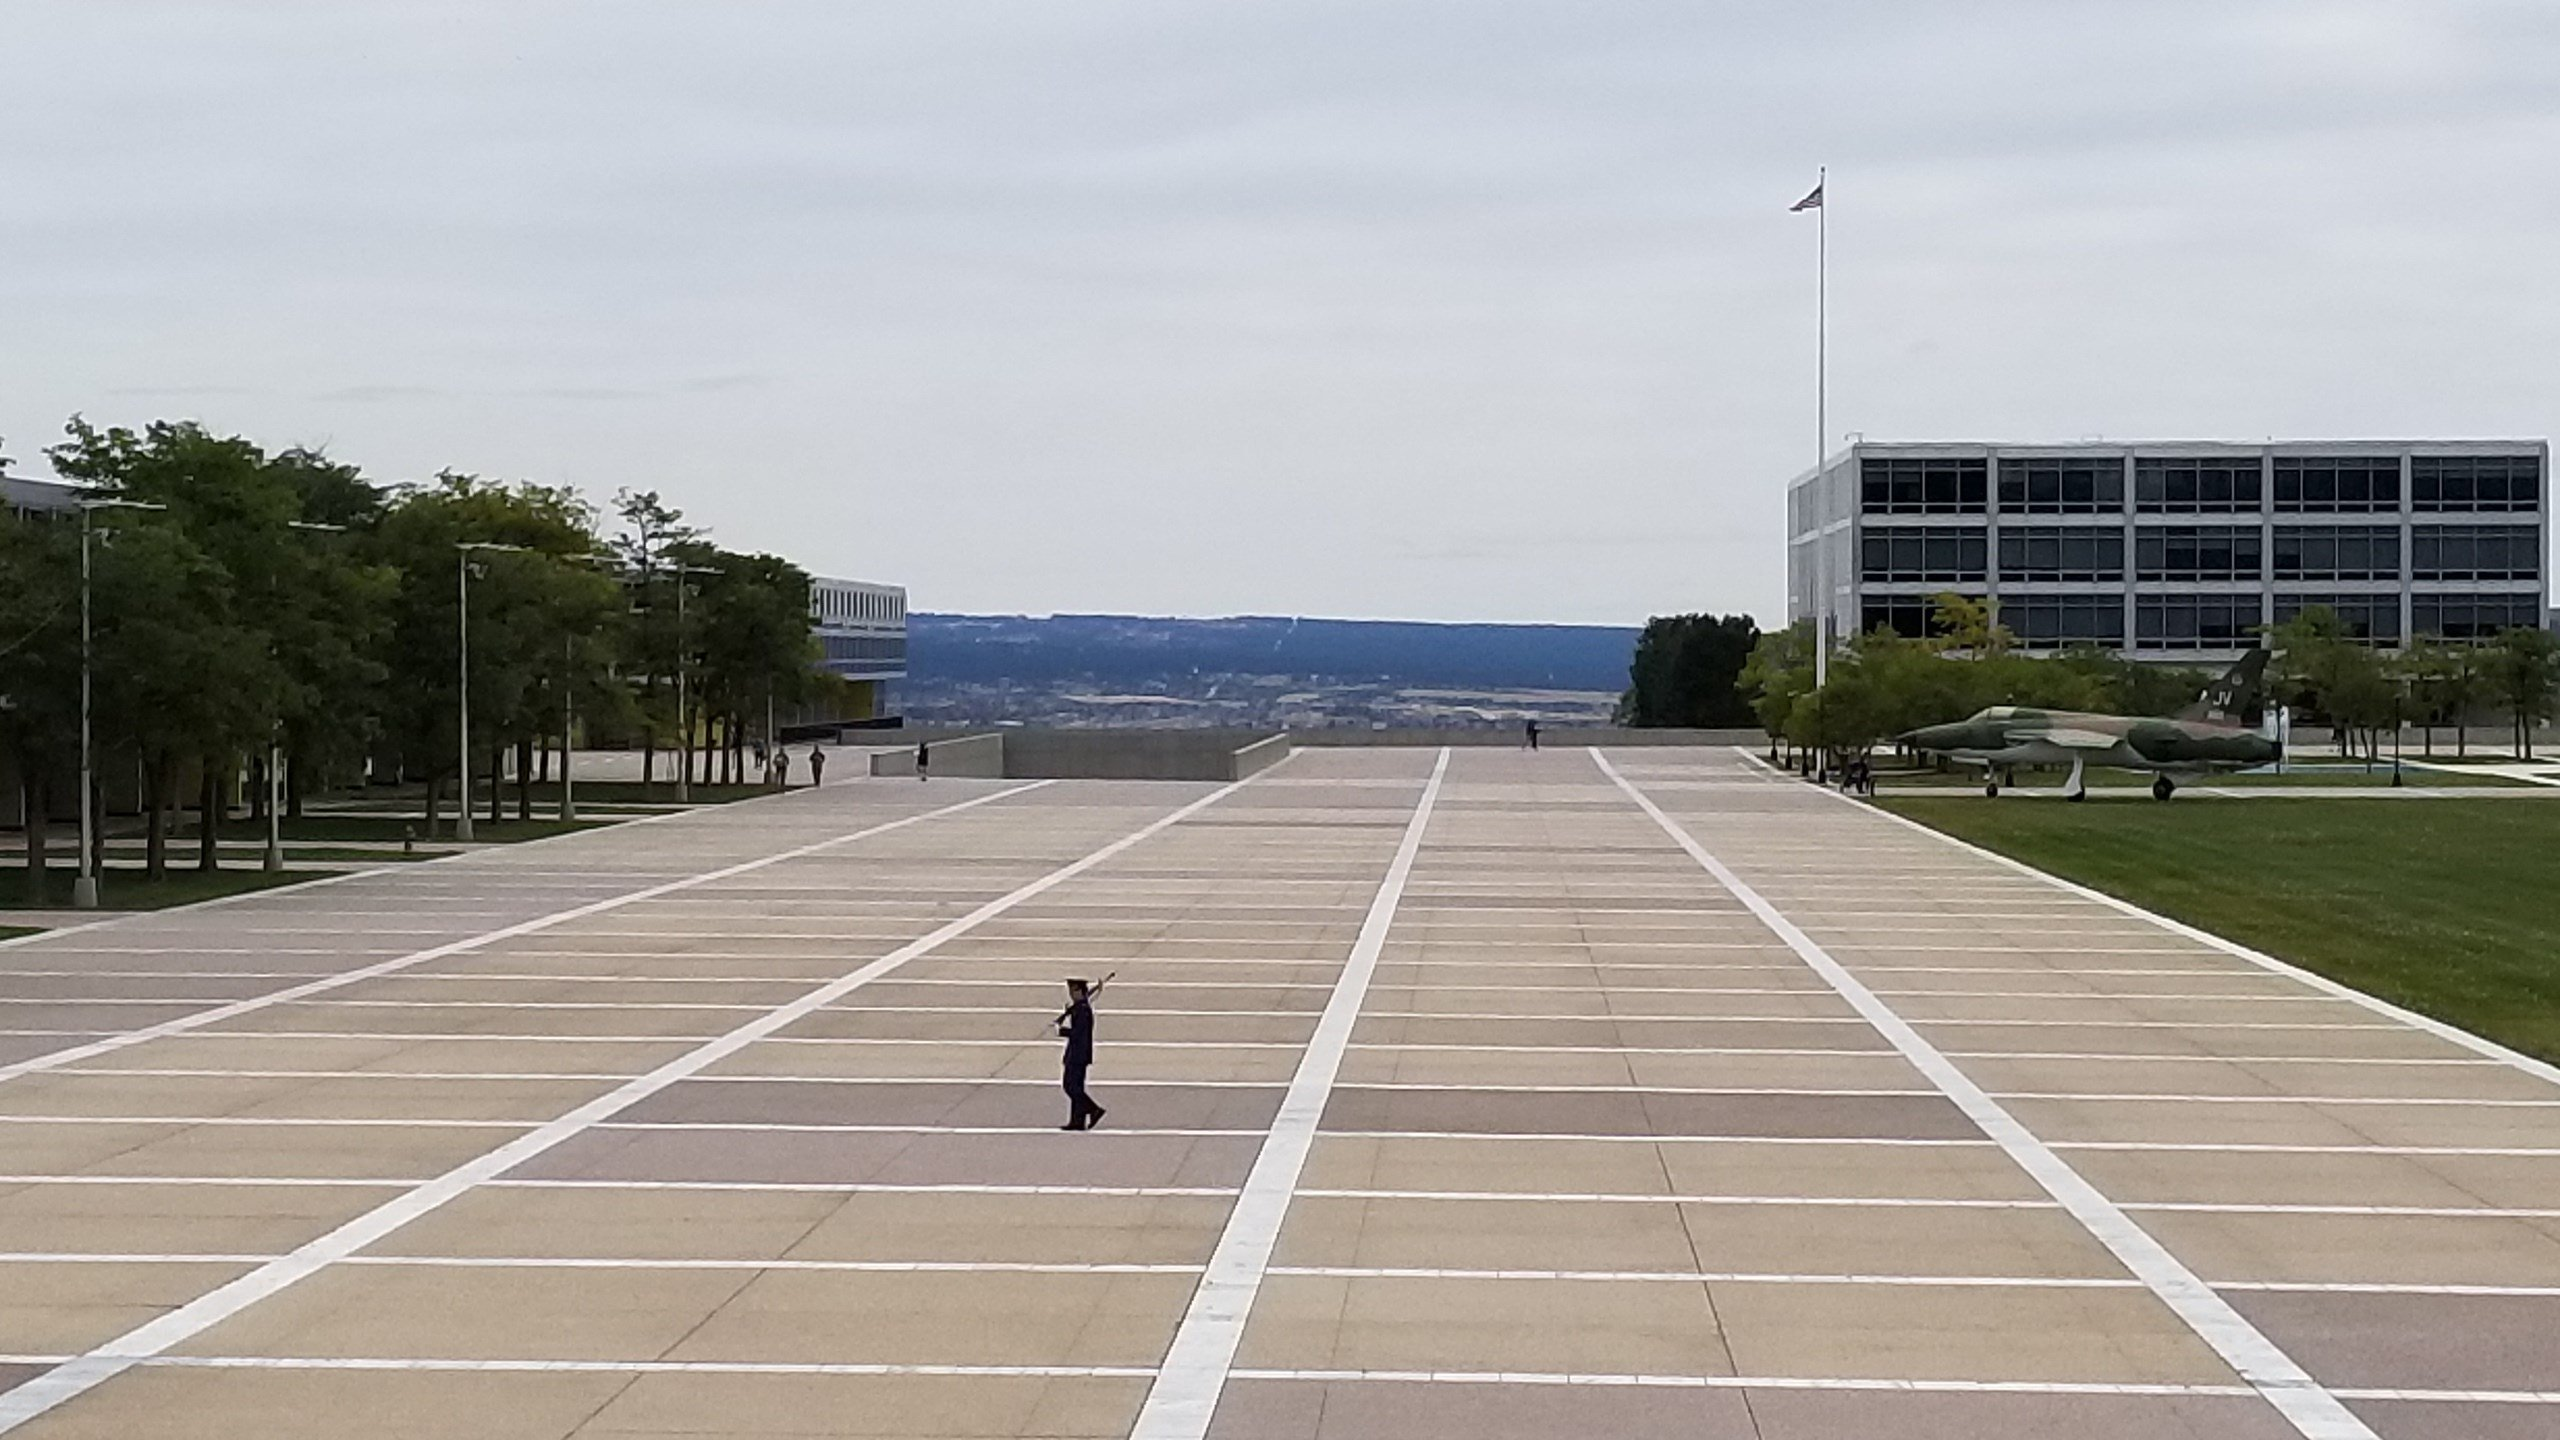 A uniformed sentry paces the Terrazo at the US Air Force Academy